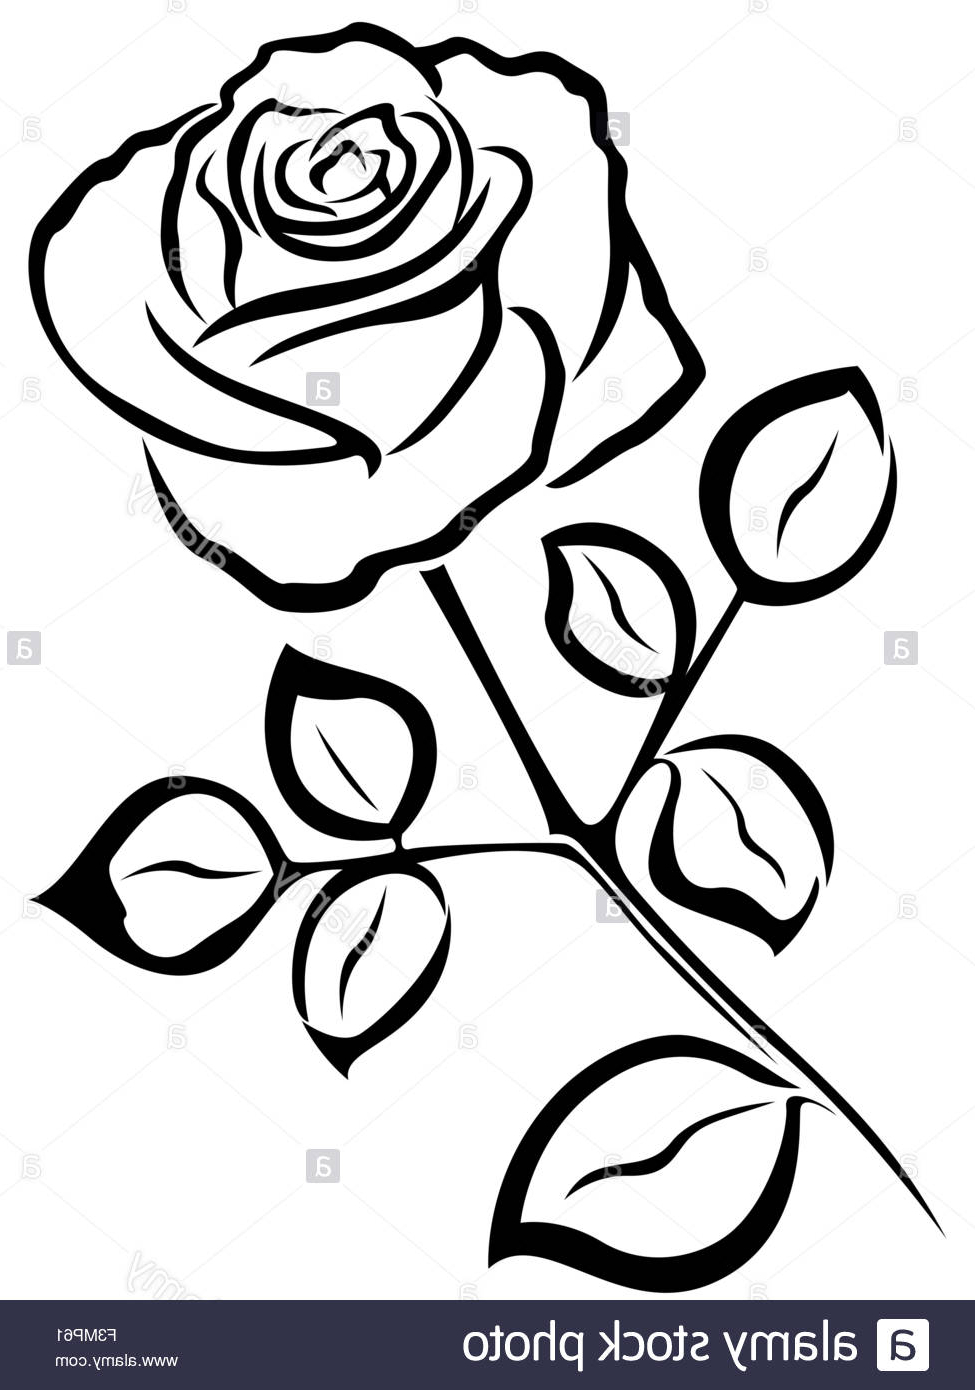 Rose drawing black and white at getdrawings free for personal 975x1390 rose flower black and white drawing black vector outline of single mightylinksfo